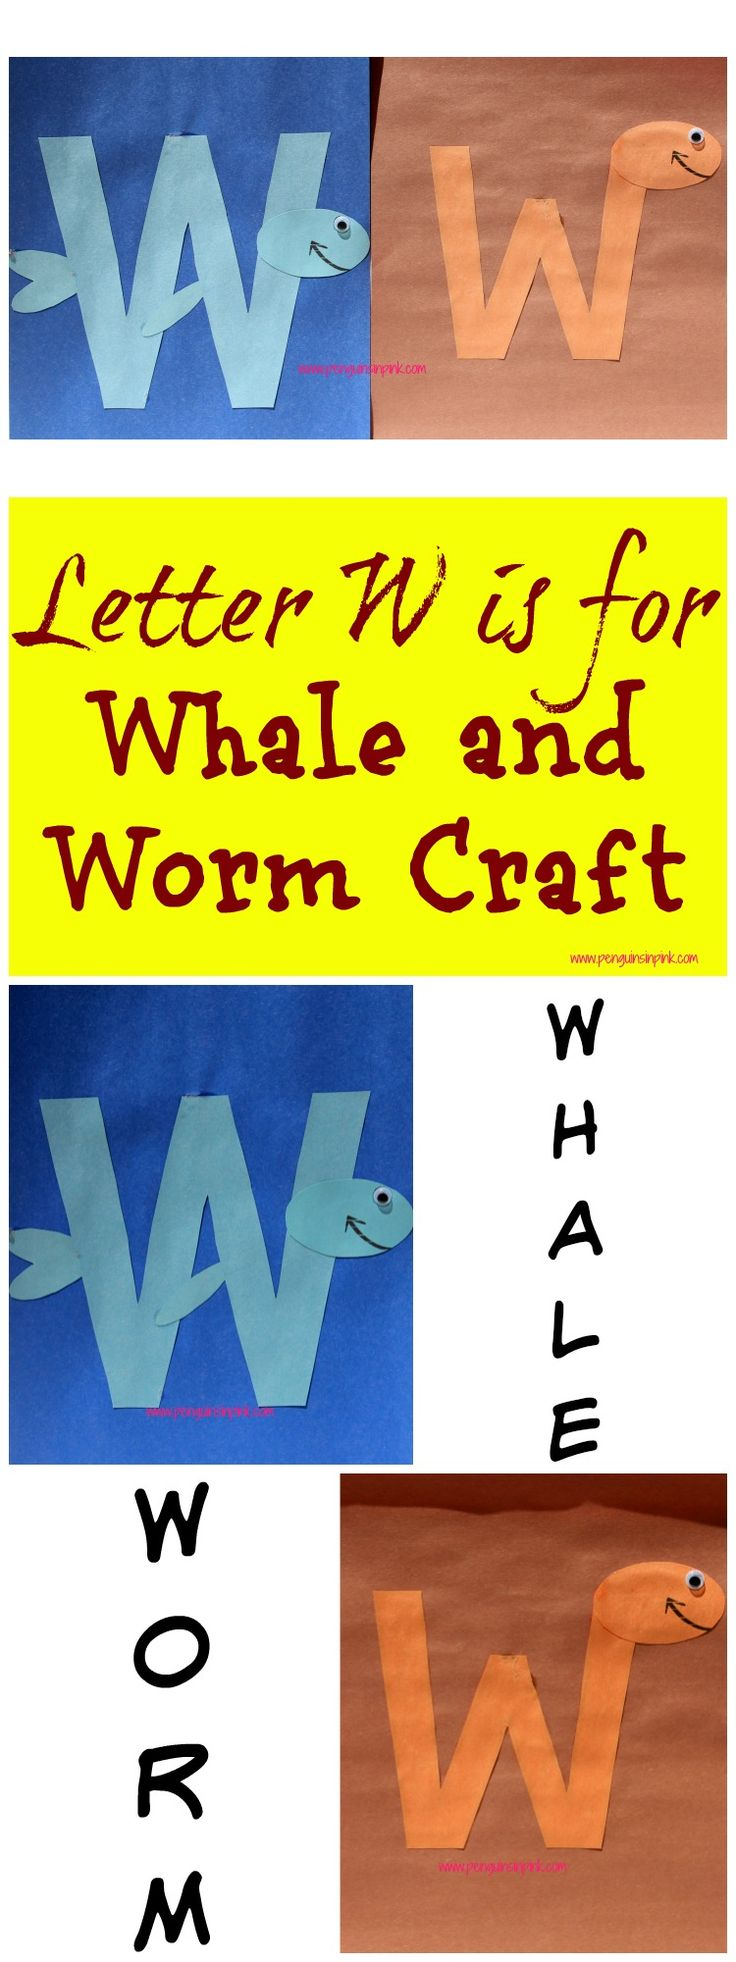 Letter W is for Whale and Worm Craft is a fun letter a craft making a